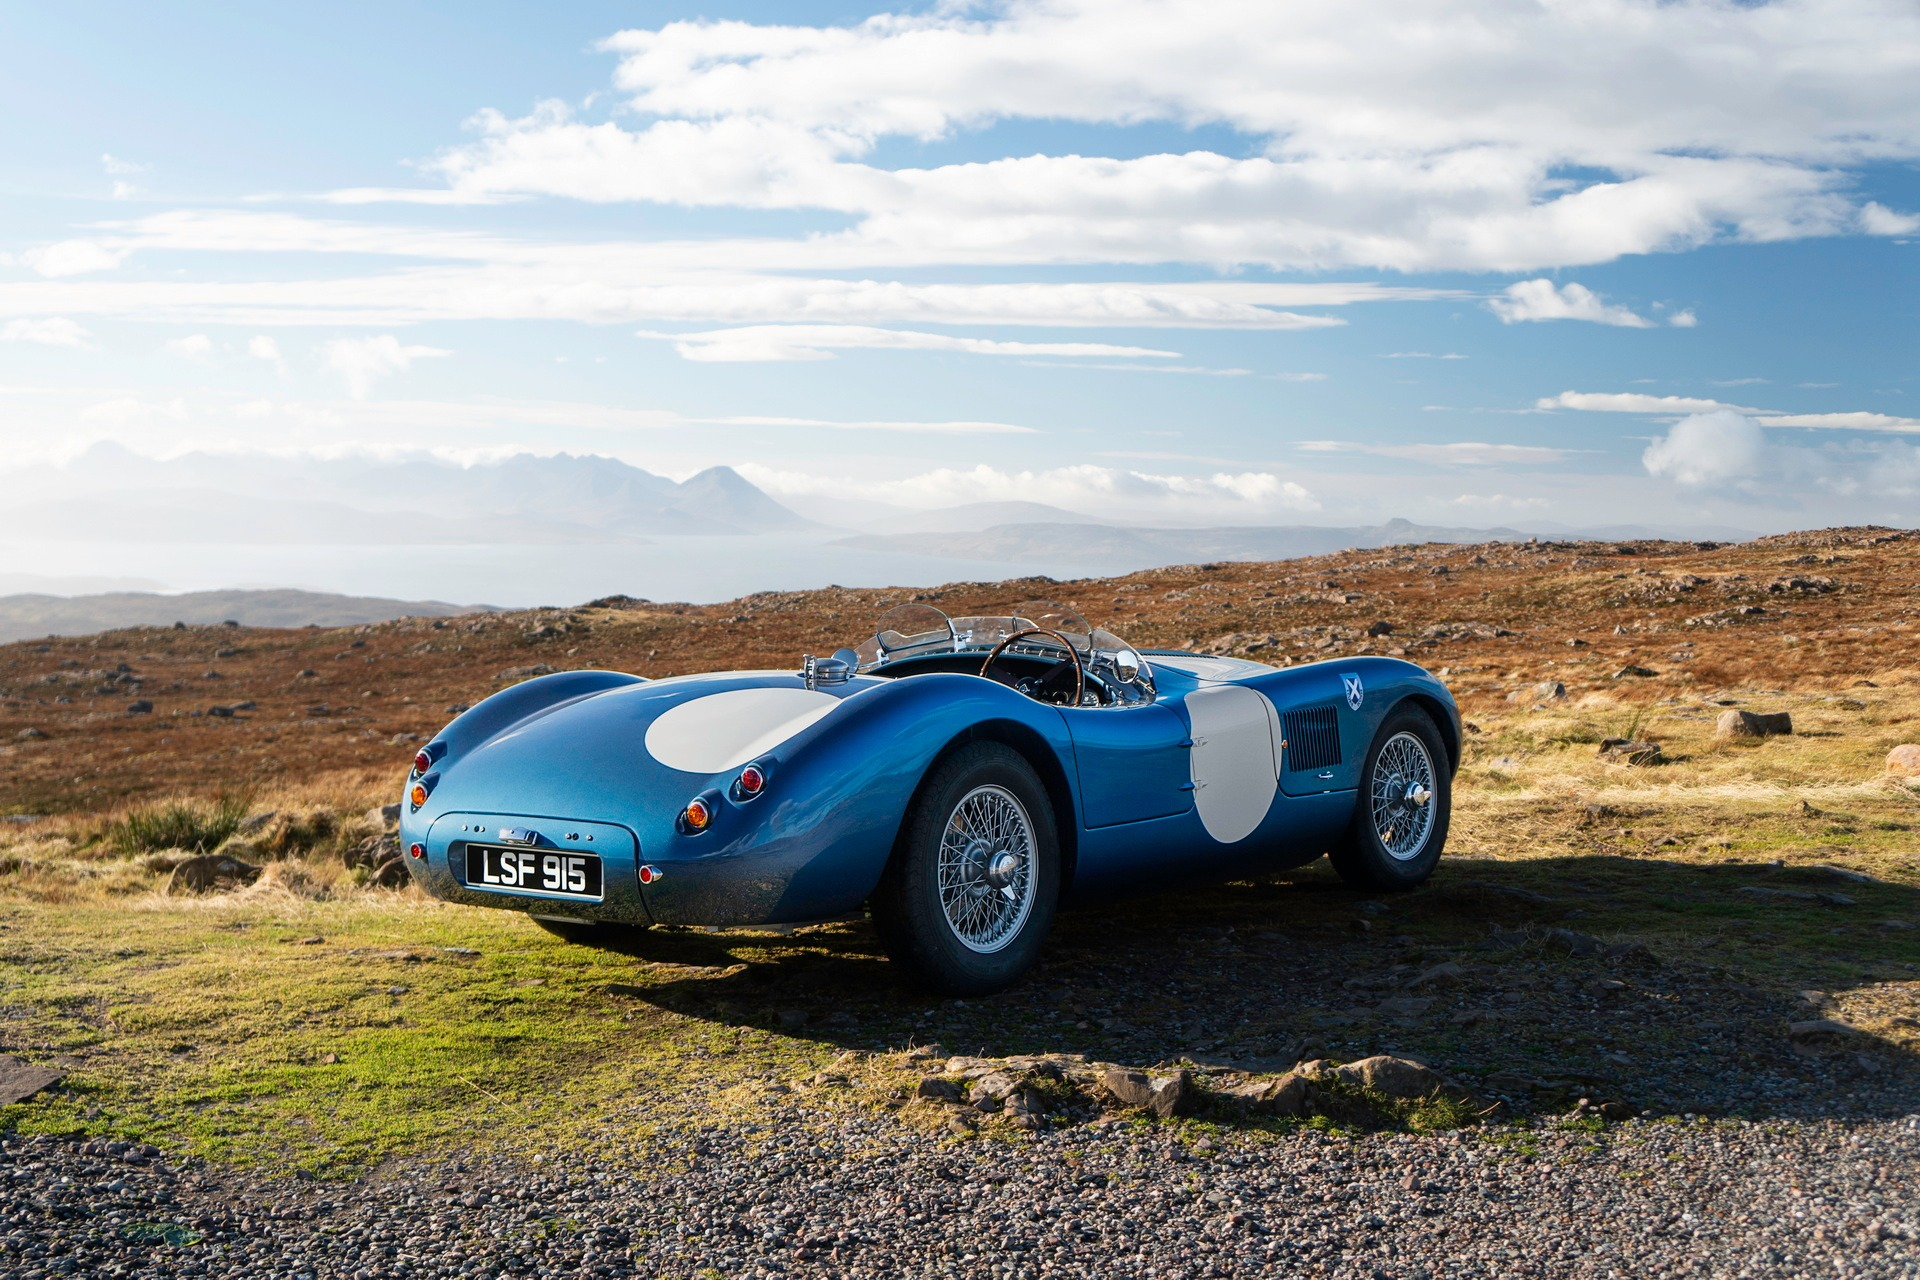 The UK-based niche automaker will be building seven painstakingly precise replicas of the iconic Jaguar C-Type. The company says it will resort to historically accurate methods of production and base it in Coventry, England, where the originals were pieced together back in the 1950s.